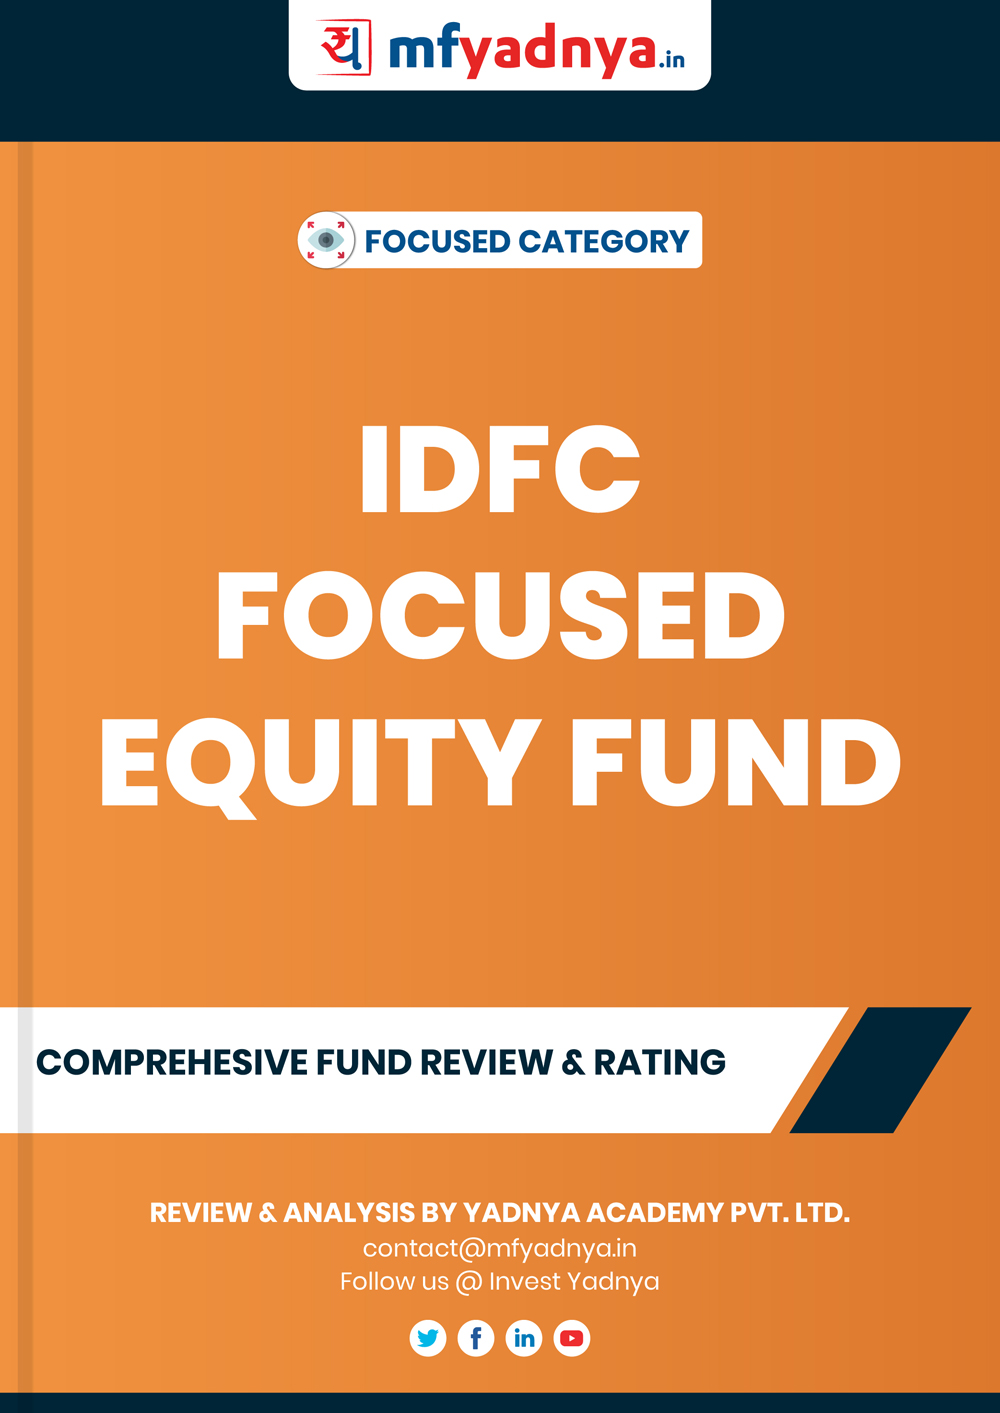 Focused Category Review - IDFC Focused Equity Fund. Most Comprehensive and detailed MF review based on Yadnya's proprietary methodology of Green, Yellow & Red Star. Detailed Analysis & Review based on May 31st, 2020 data. Review also gives you the historical trend of the performance which will show fund's performance consistency.